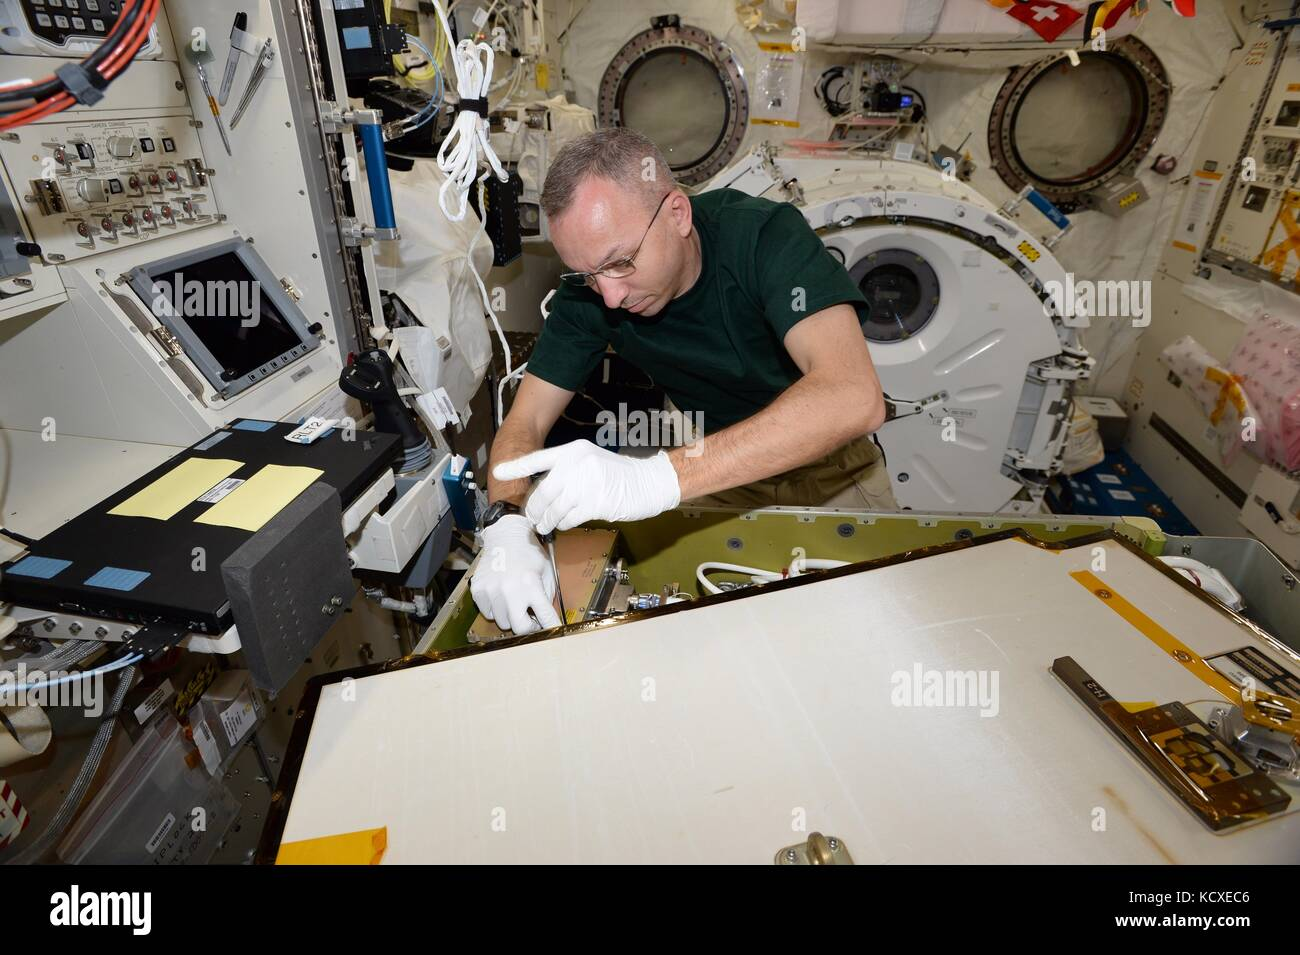 NASA Expedition 52 crew member American astronaut Randy Bresnik repairs the Main Bus Switching Unit onboard the Stock Photo